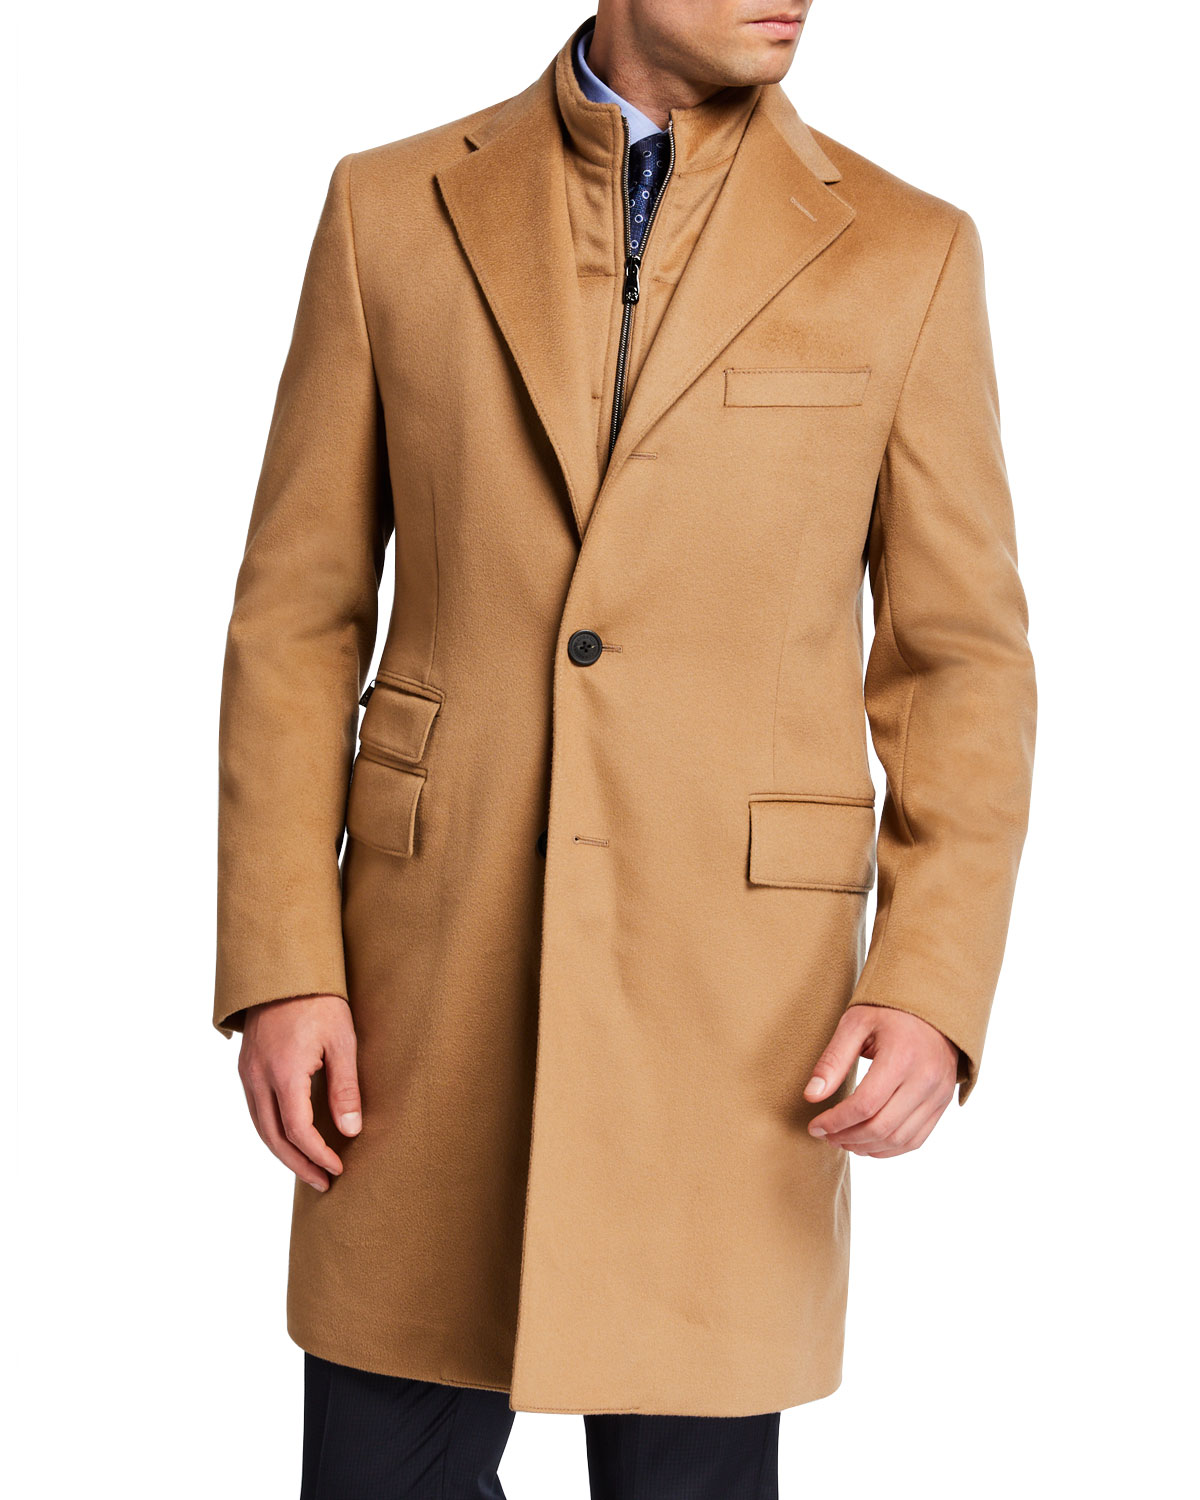 Men's ID Top Coat w/ Removable Dickey